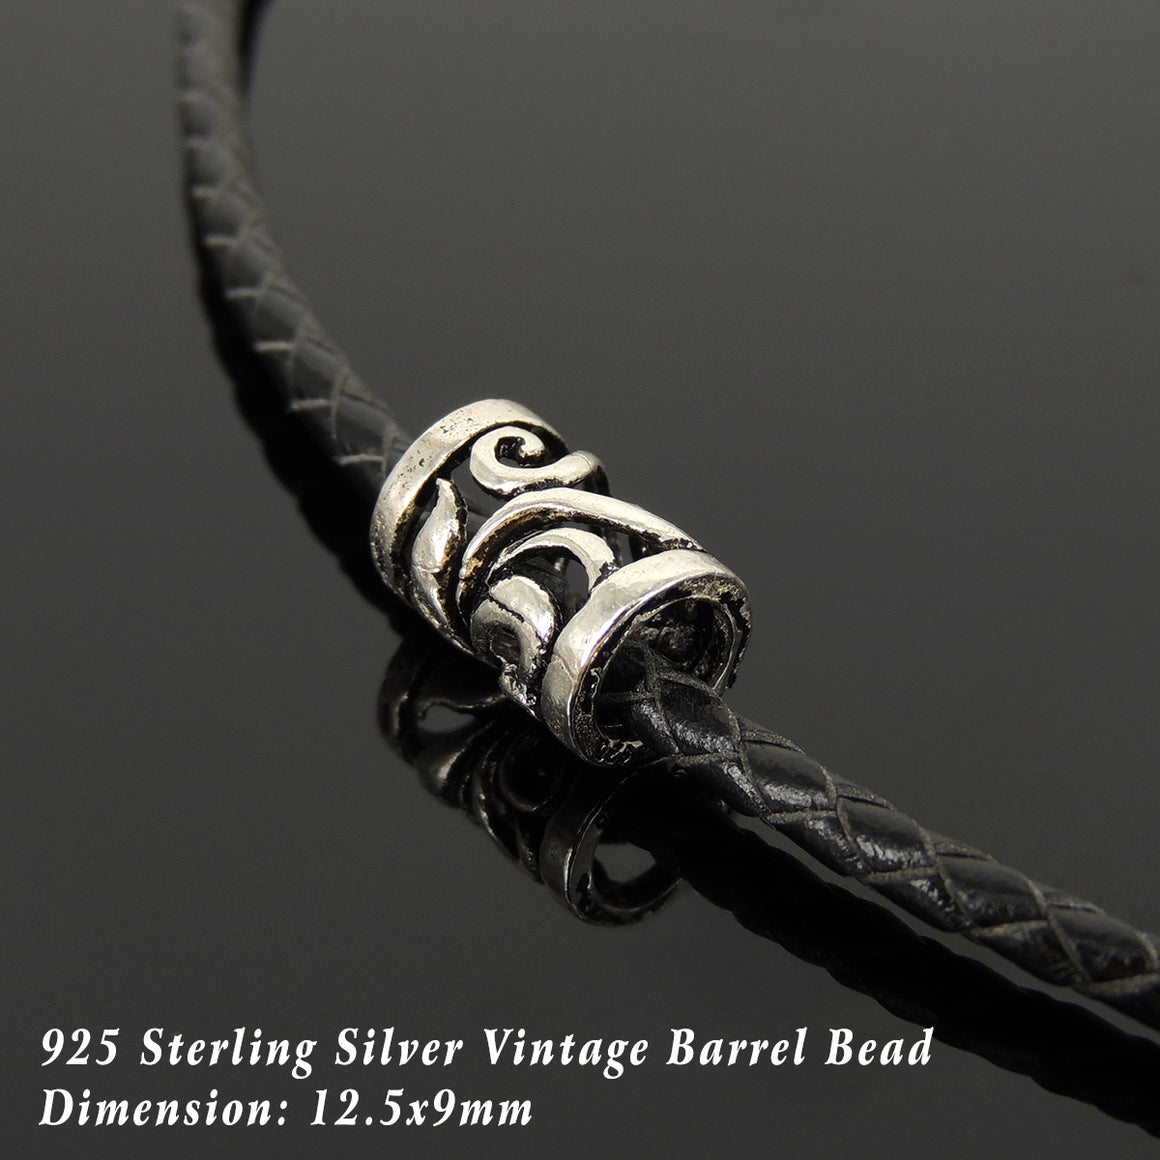 Handmade Vintage Celtic 90's Choker Necklace - Authentic Turkish Black Leather for Men's Women's Casual Style with Sterling Silver 925 (non-plated) Toggle S-Clasp NK212